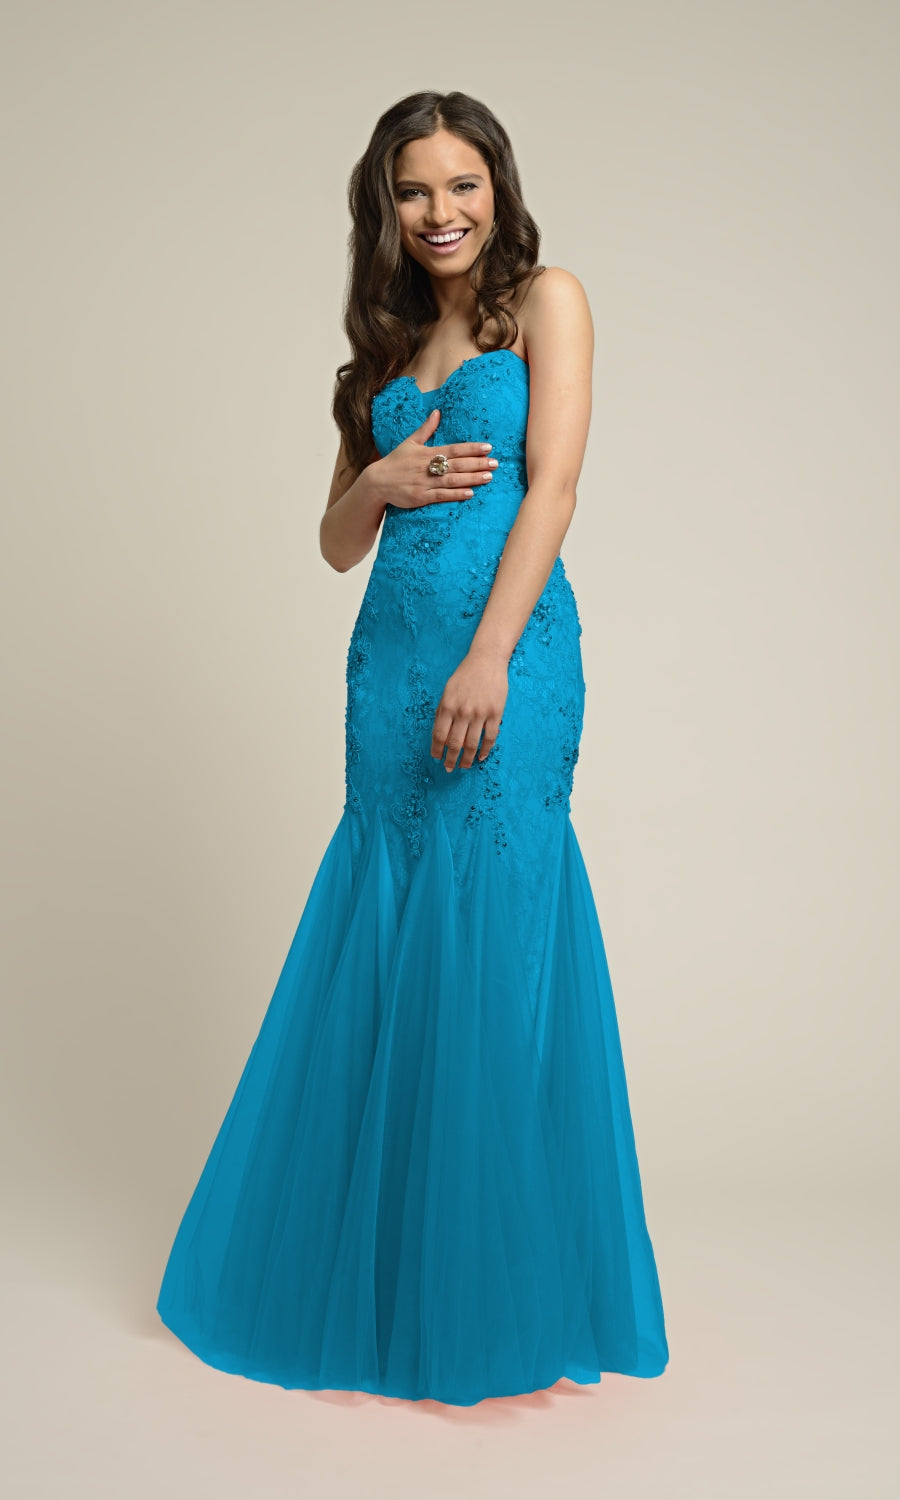 1022604 Tiffany Blue Dynasty Lace Mermaid Dress